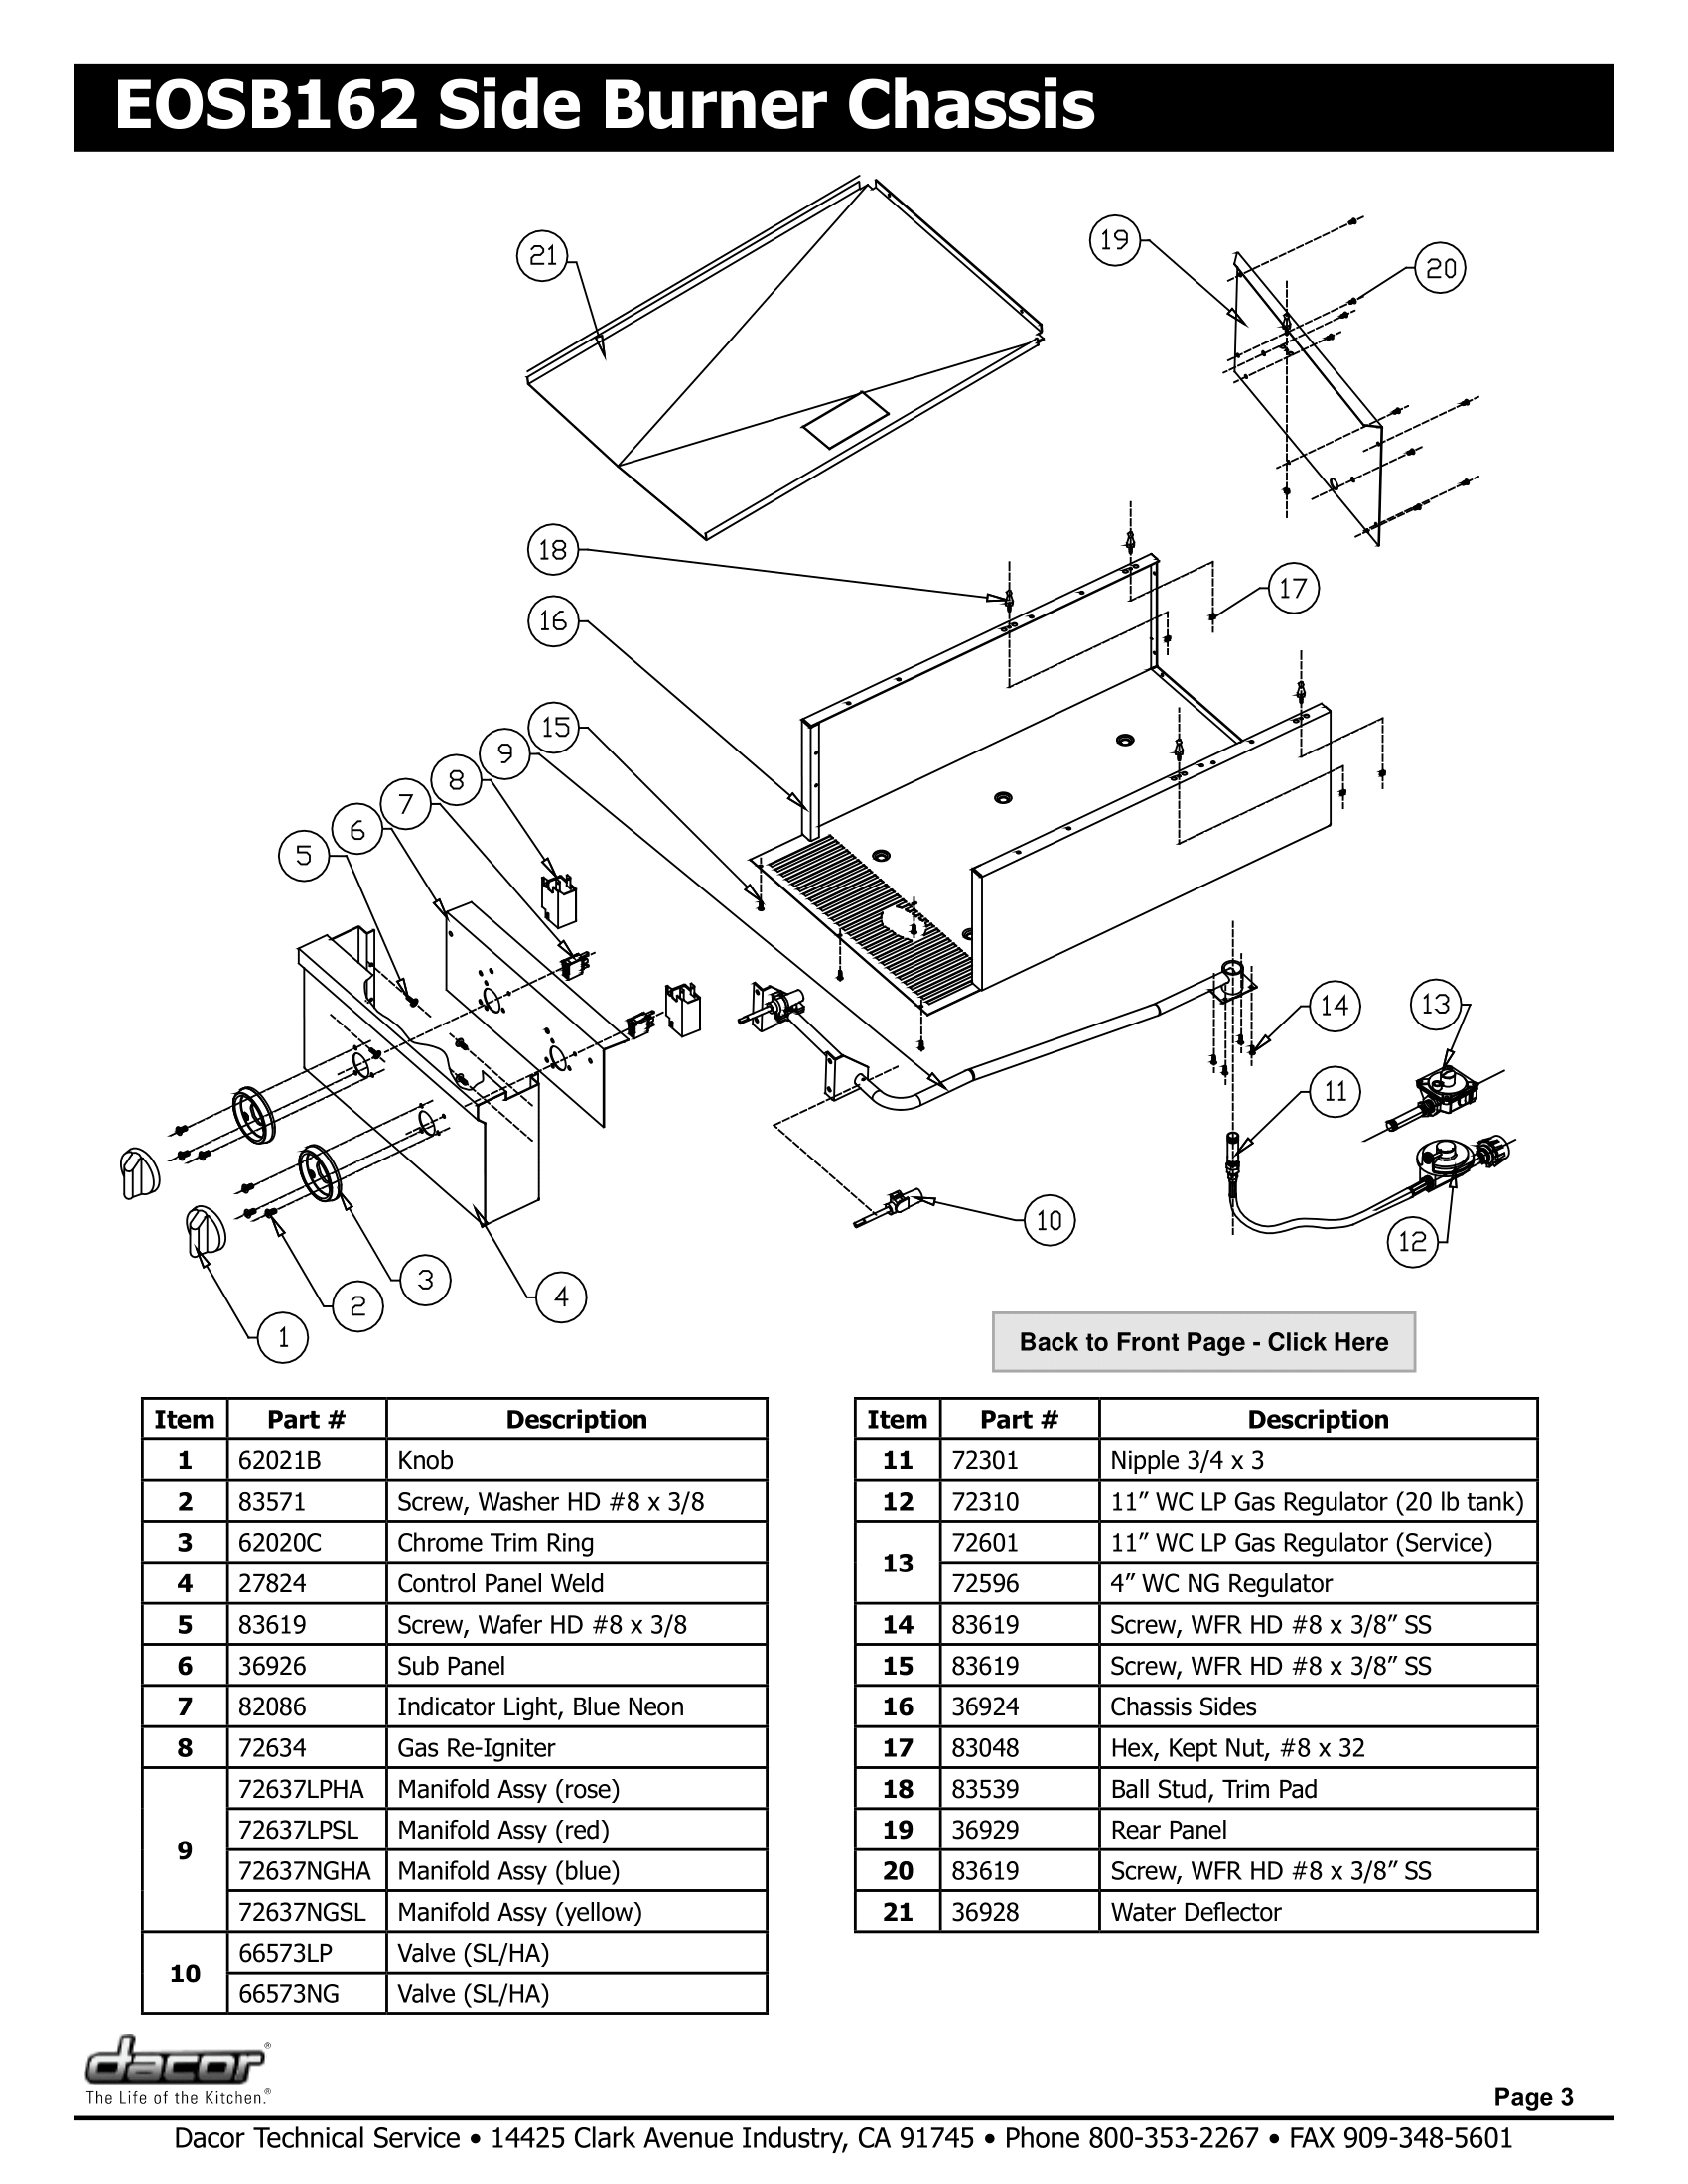 Dacor EOSB162 Side Burner Chassis Schematic